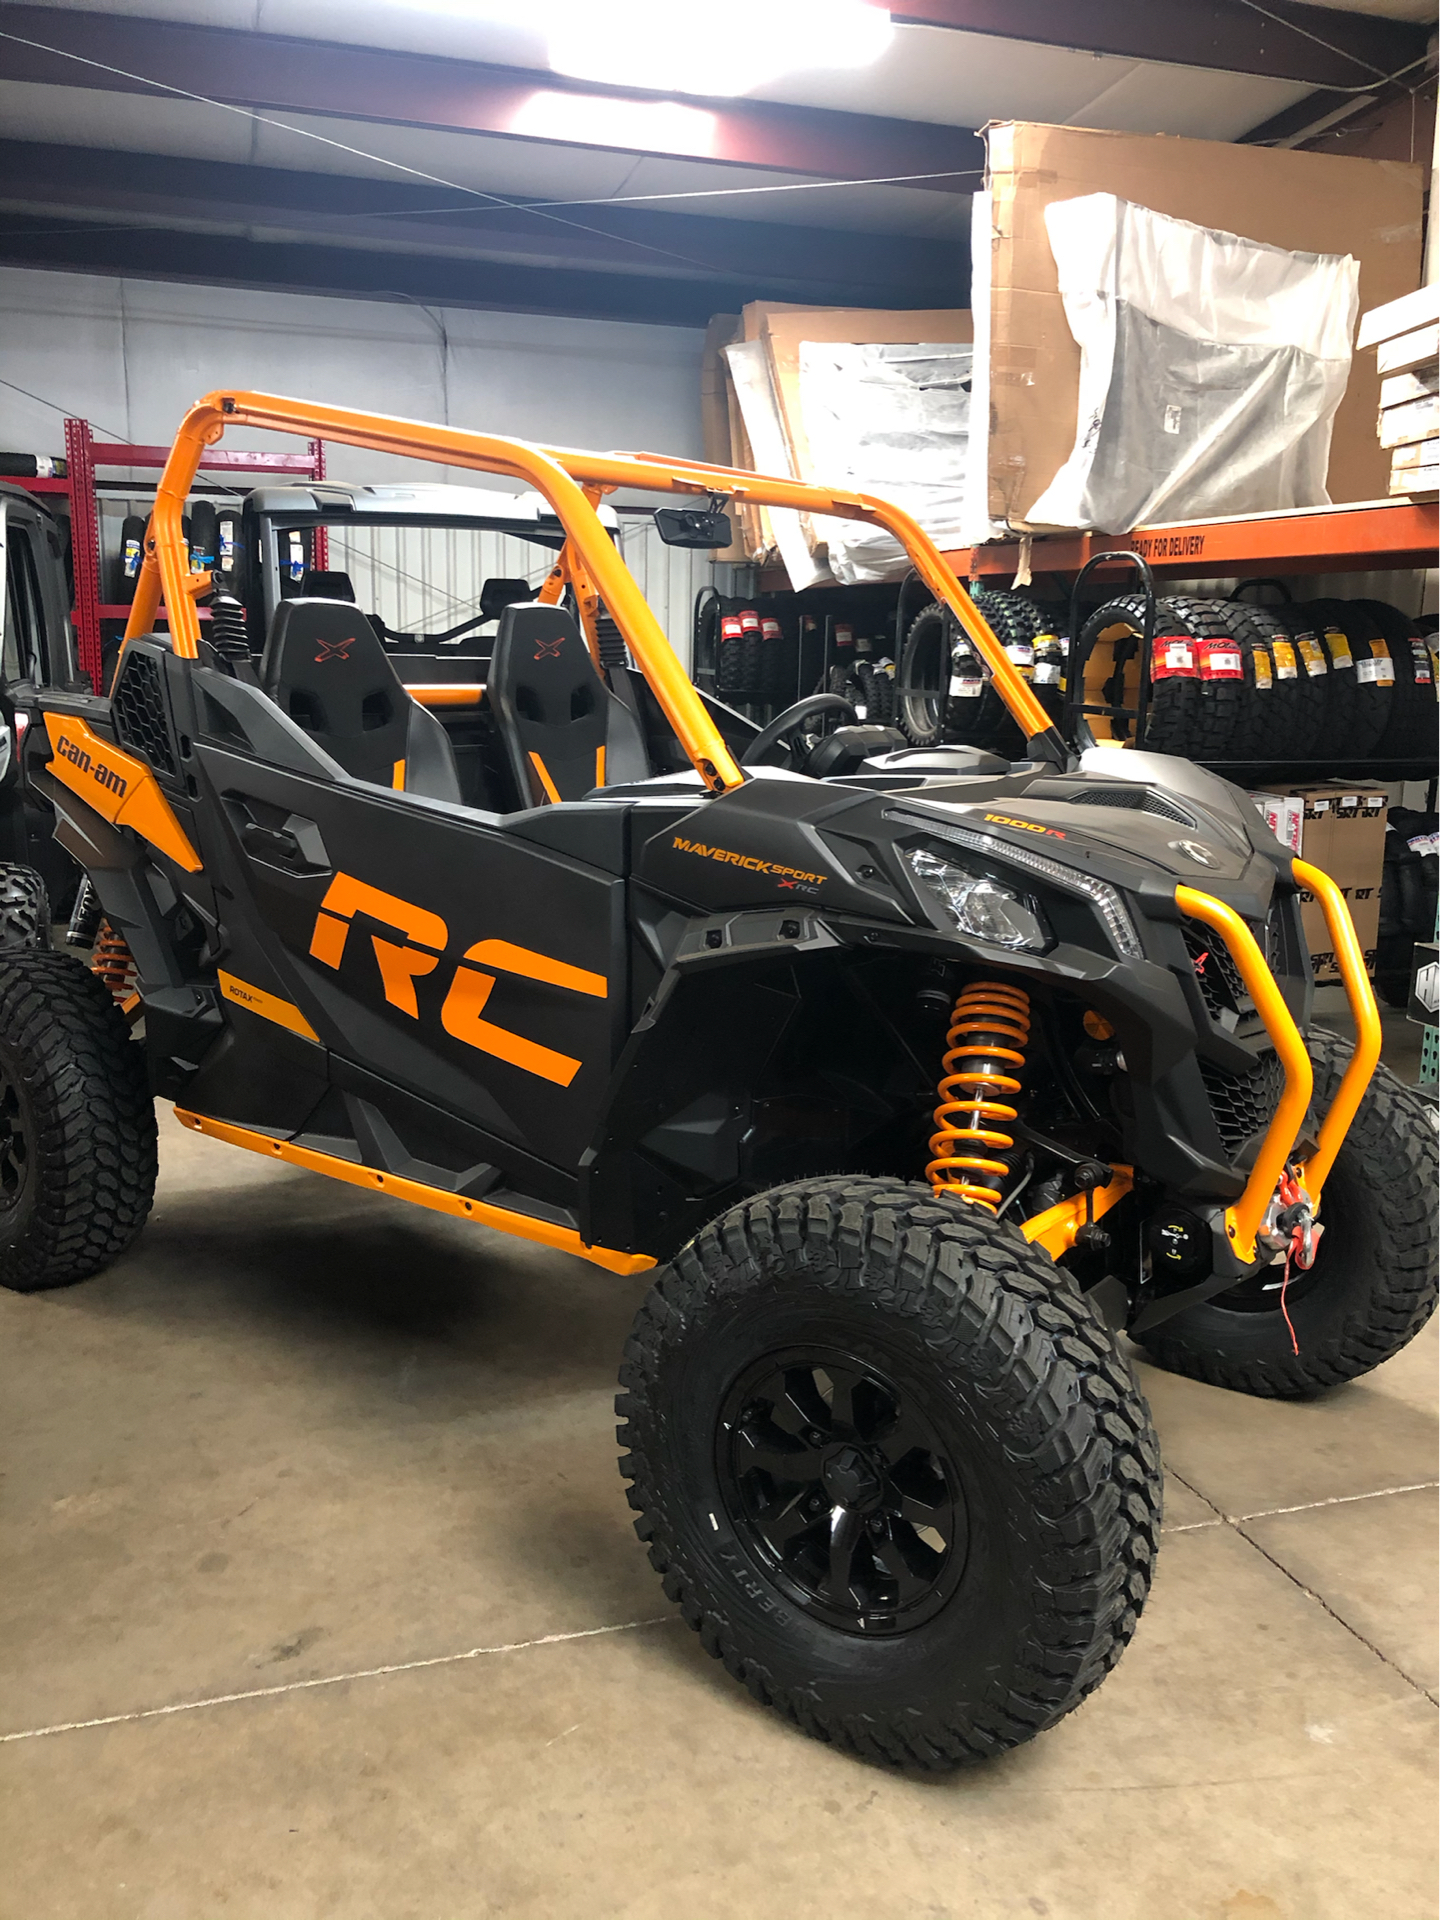 2020 Can-Am Maverick Sport X RC 1000R in Oklahoma City, Oklahoma - Photo 2